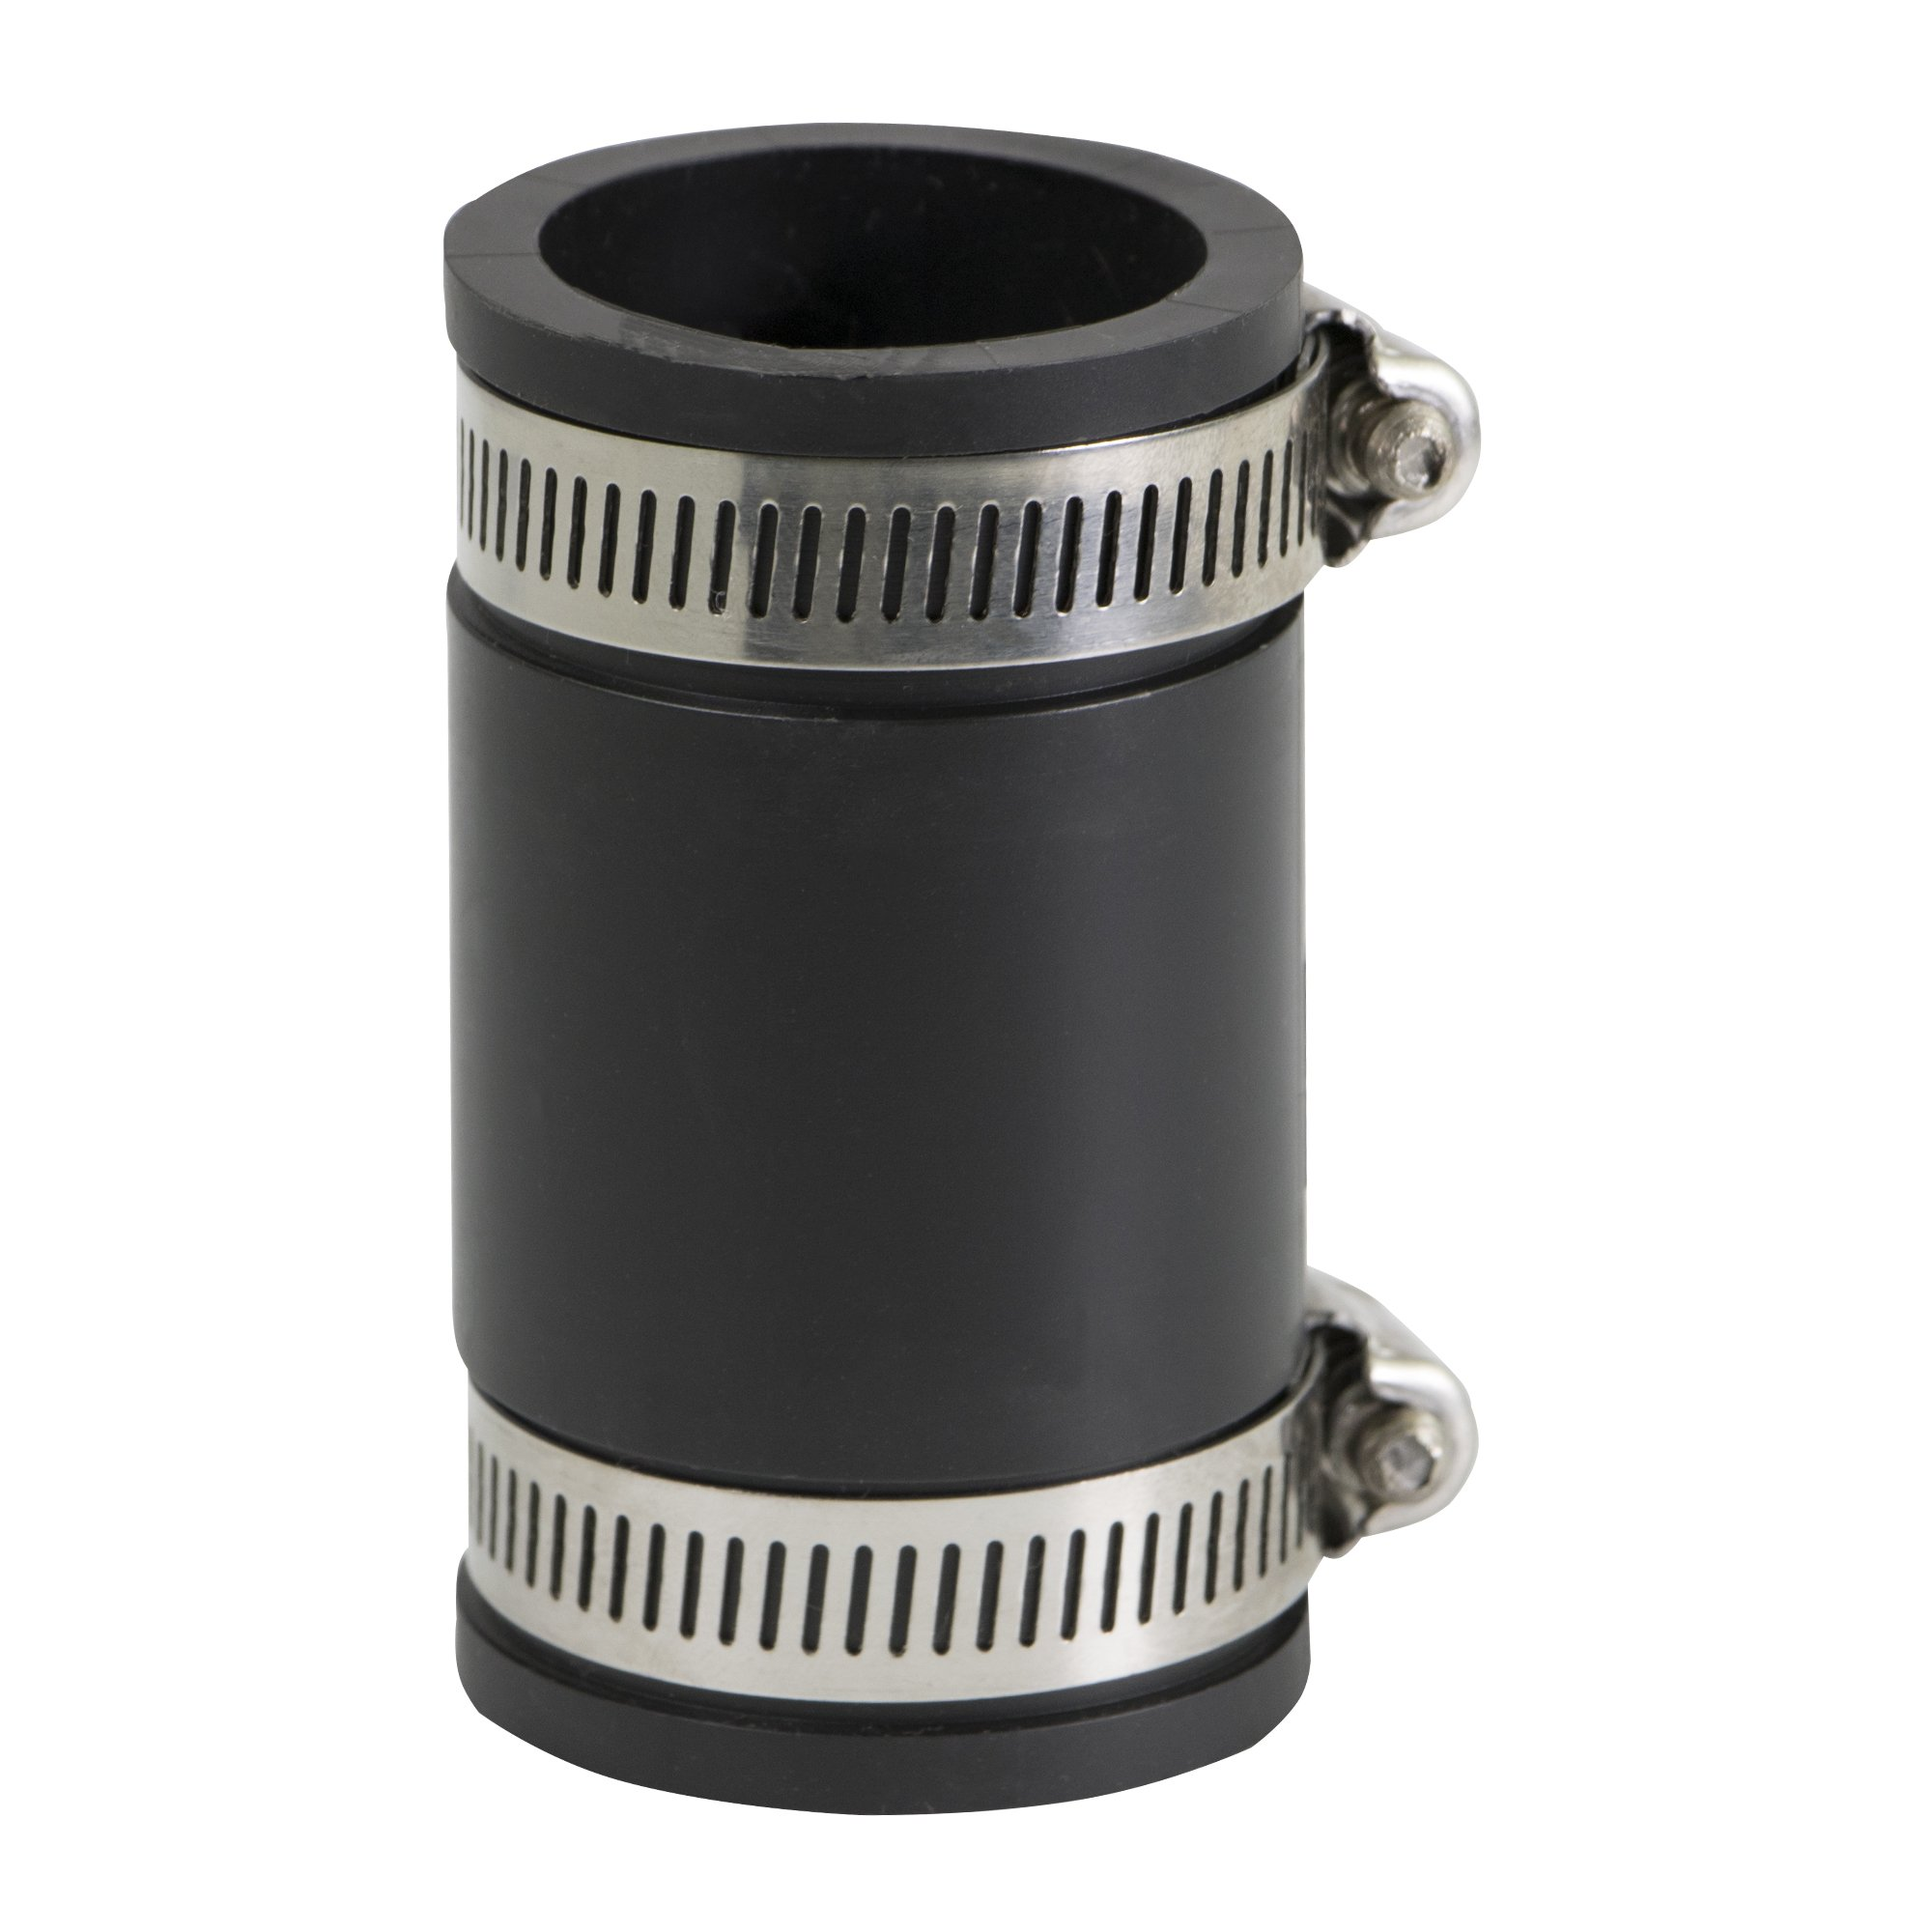 EVERCONNECT 4822x10 Flexible PVC Coupling with Stainless Steel clamps 1'', Black (pack of 10)